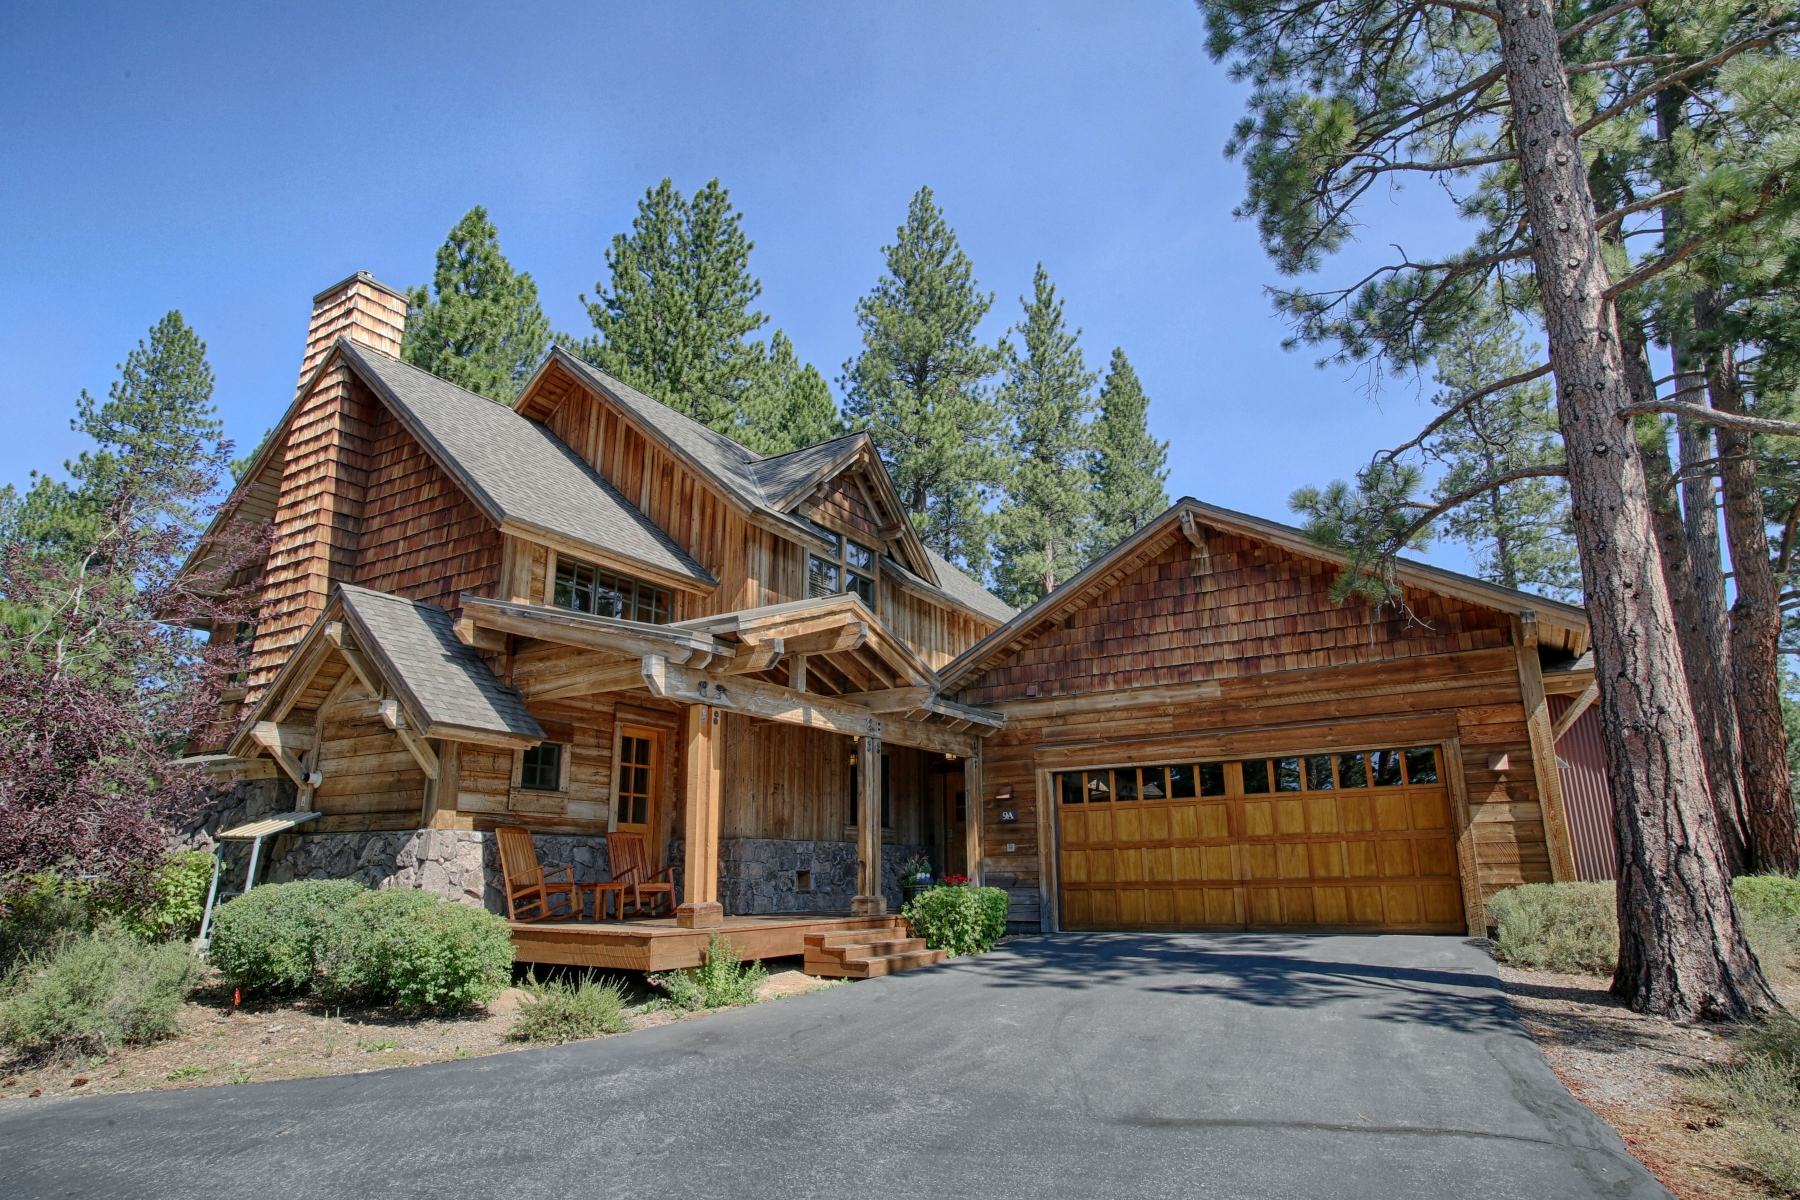 Single Family Home for Sale at 12585 Legacy Court, A13A-52 12585 Legacy Court A13A-52 Truckee, California, 96161 United States